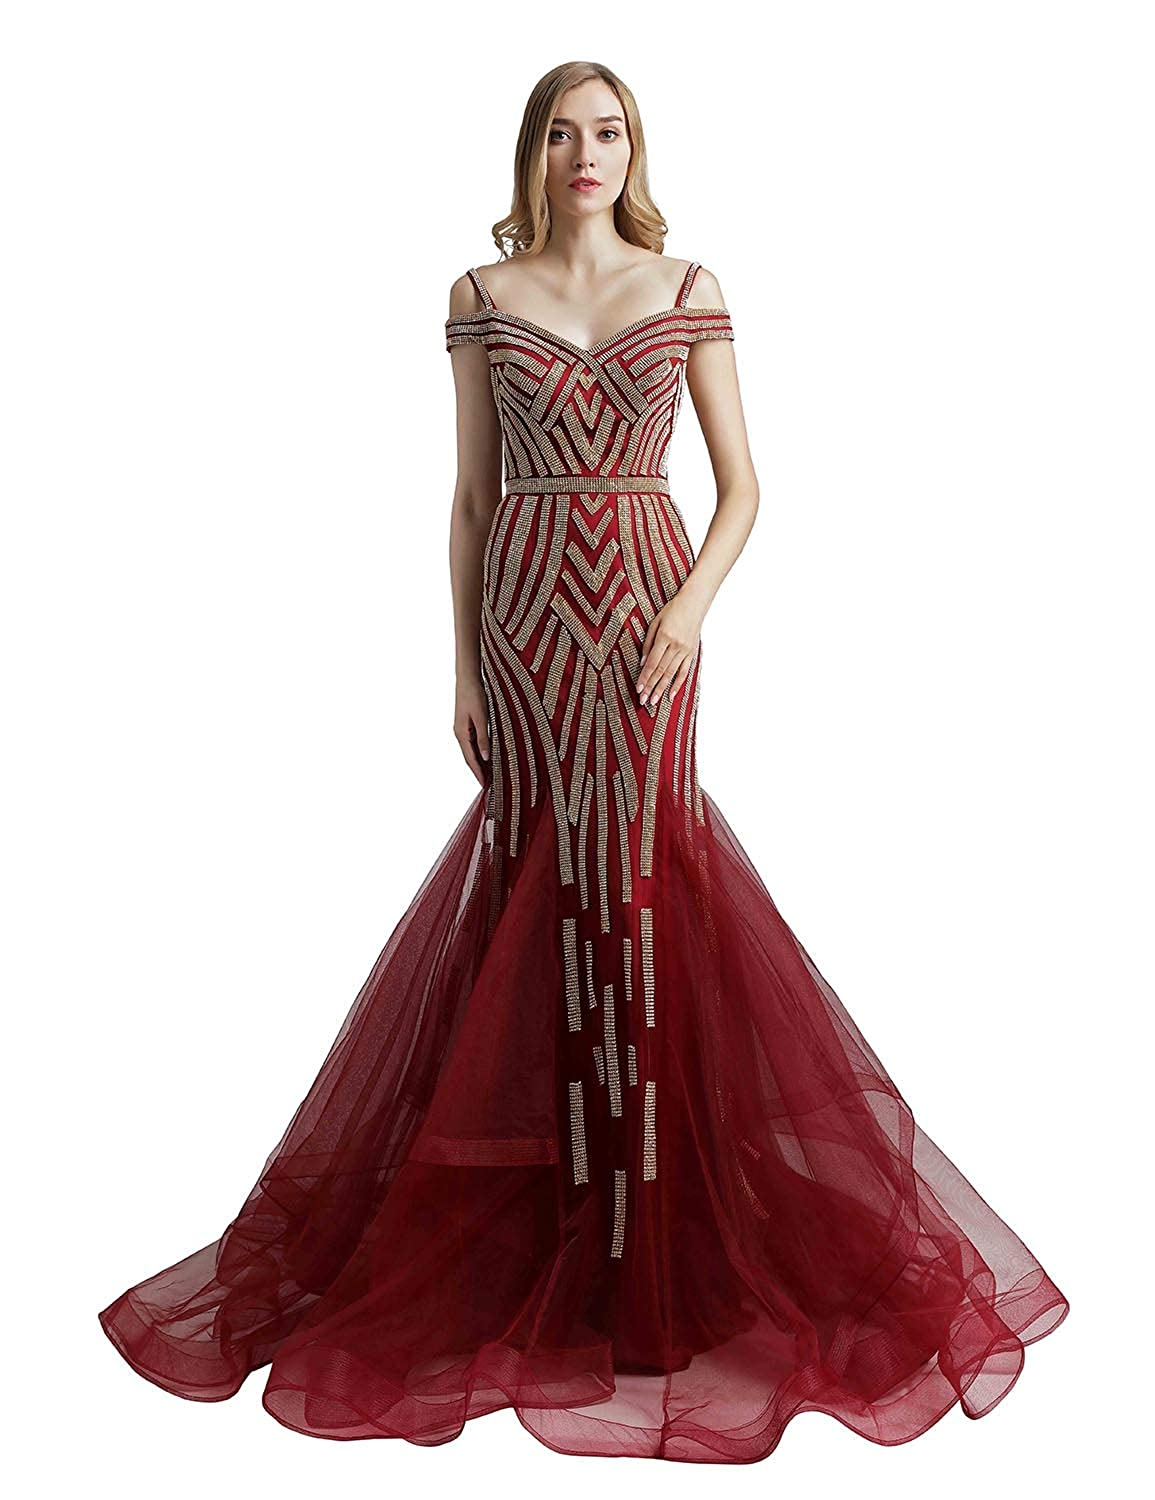 494burgundy Sarahbridal Womens Lace Prom Dresses Formal Evening Gown with Half Sleeve SD328